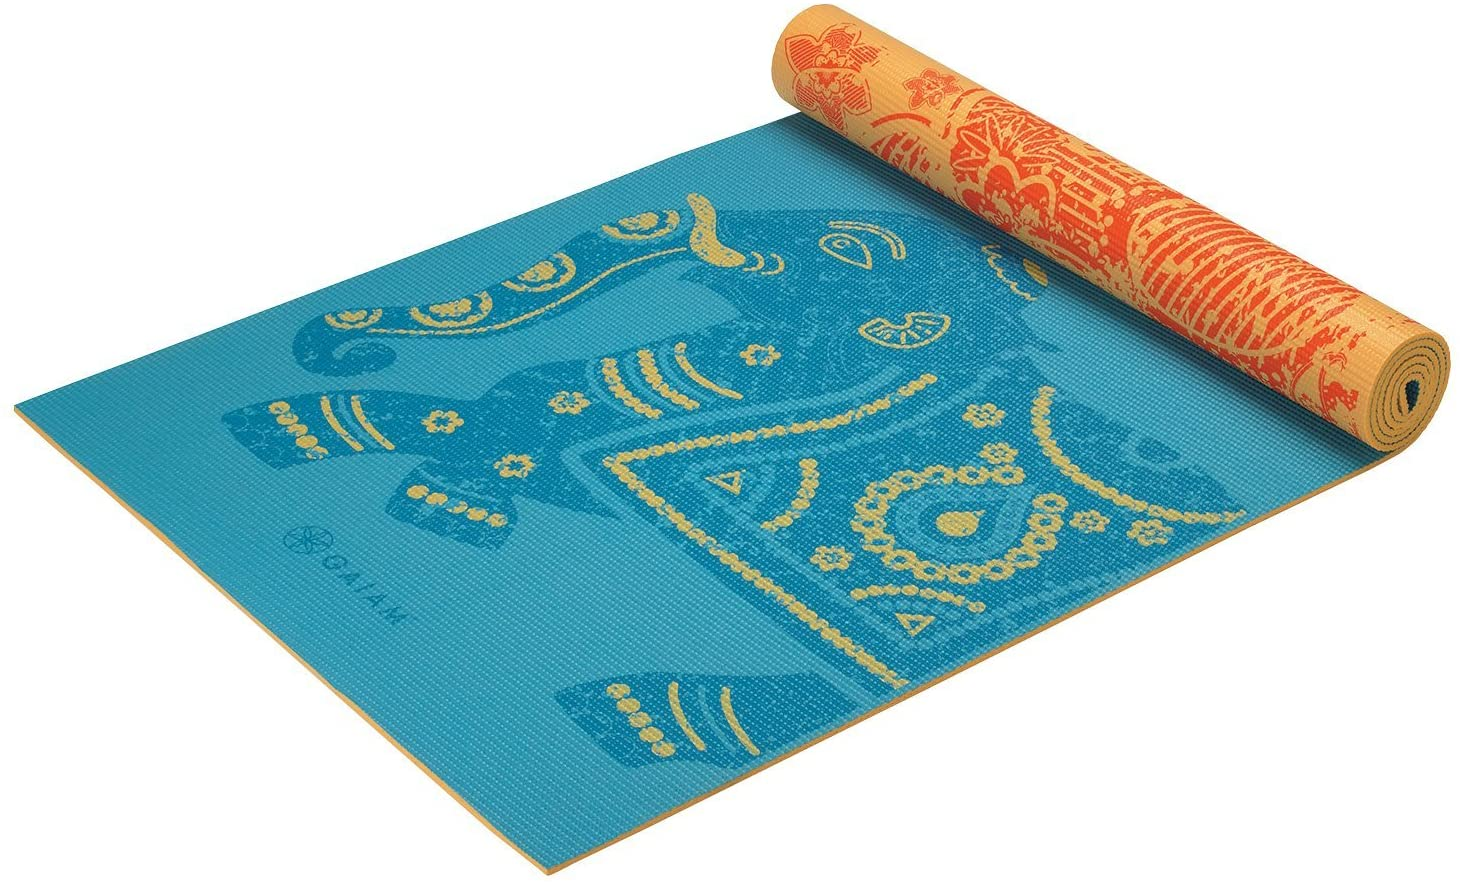 """Gaiam Yoga Mat - Premium 6mm Print Reversible Extra Thick Non Slip Exercise & Fitness Mat for All Types of Yoga, Pilates & Floor Workouts (68"""" x 24"""" x 6mm Thick)"""